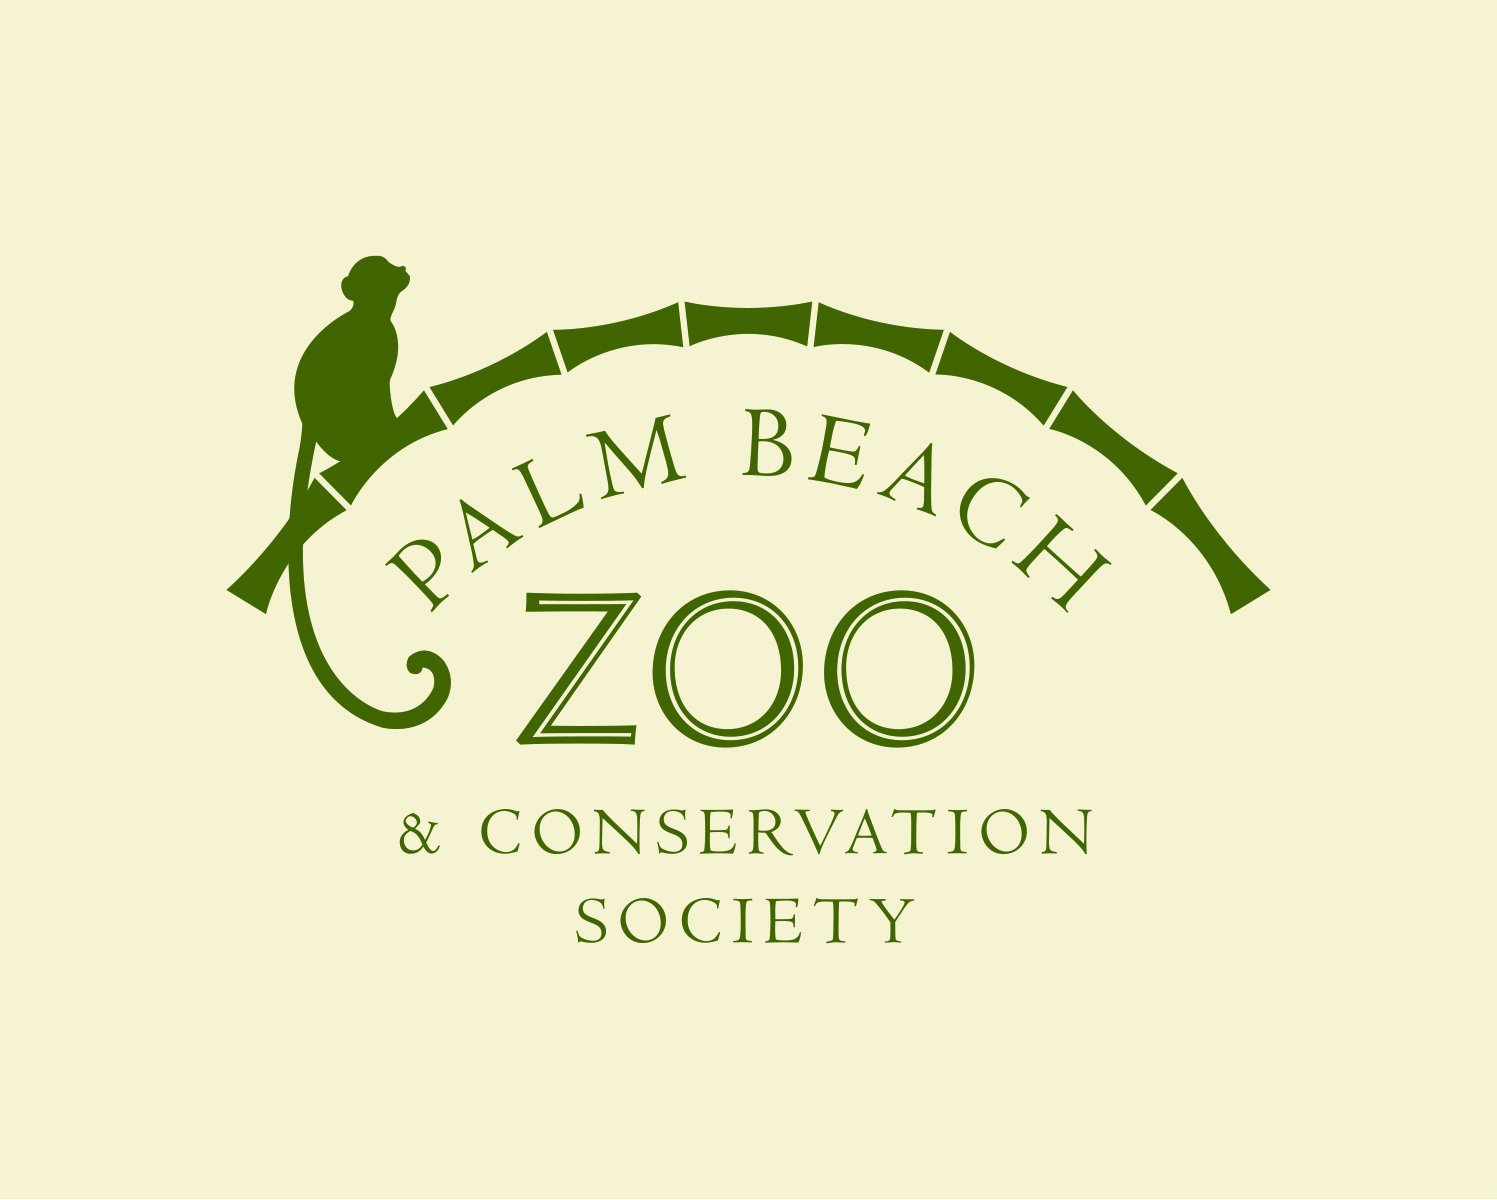 Palm Beach Zoo and Conservation Society